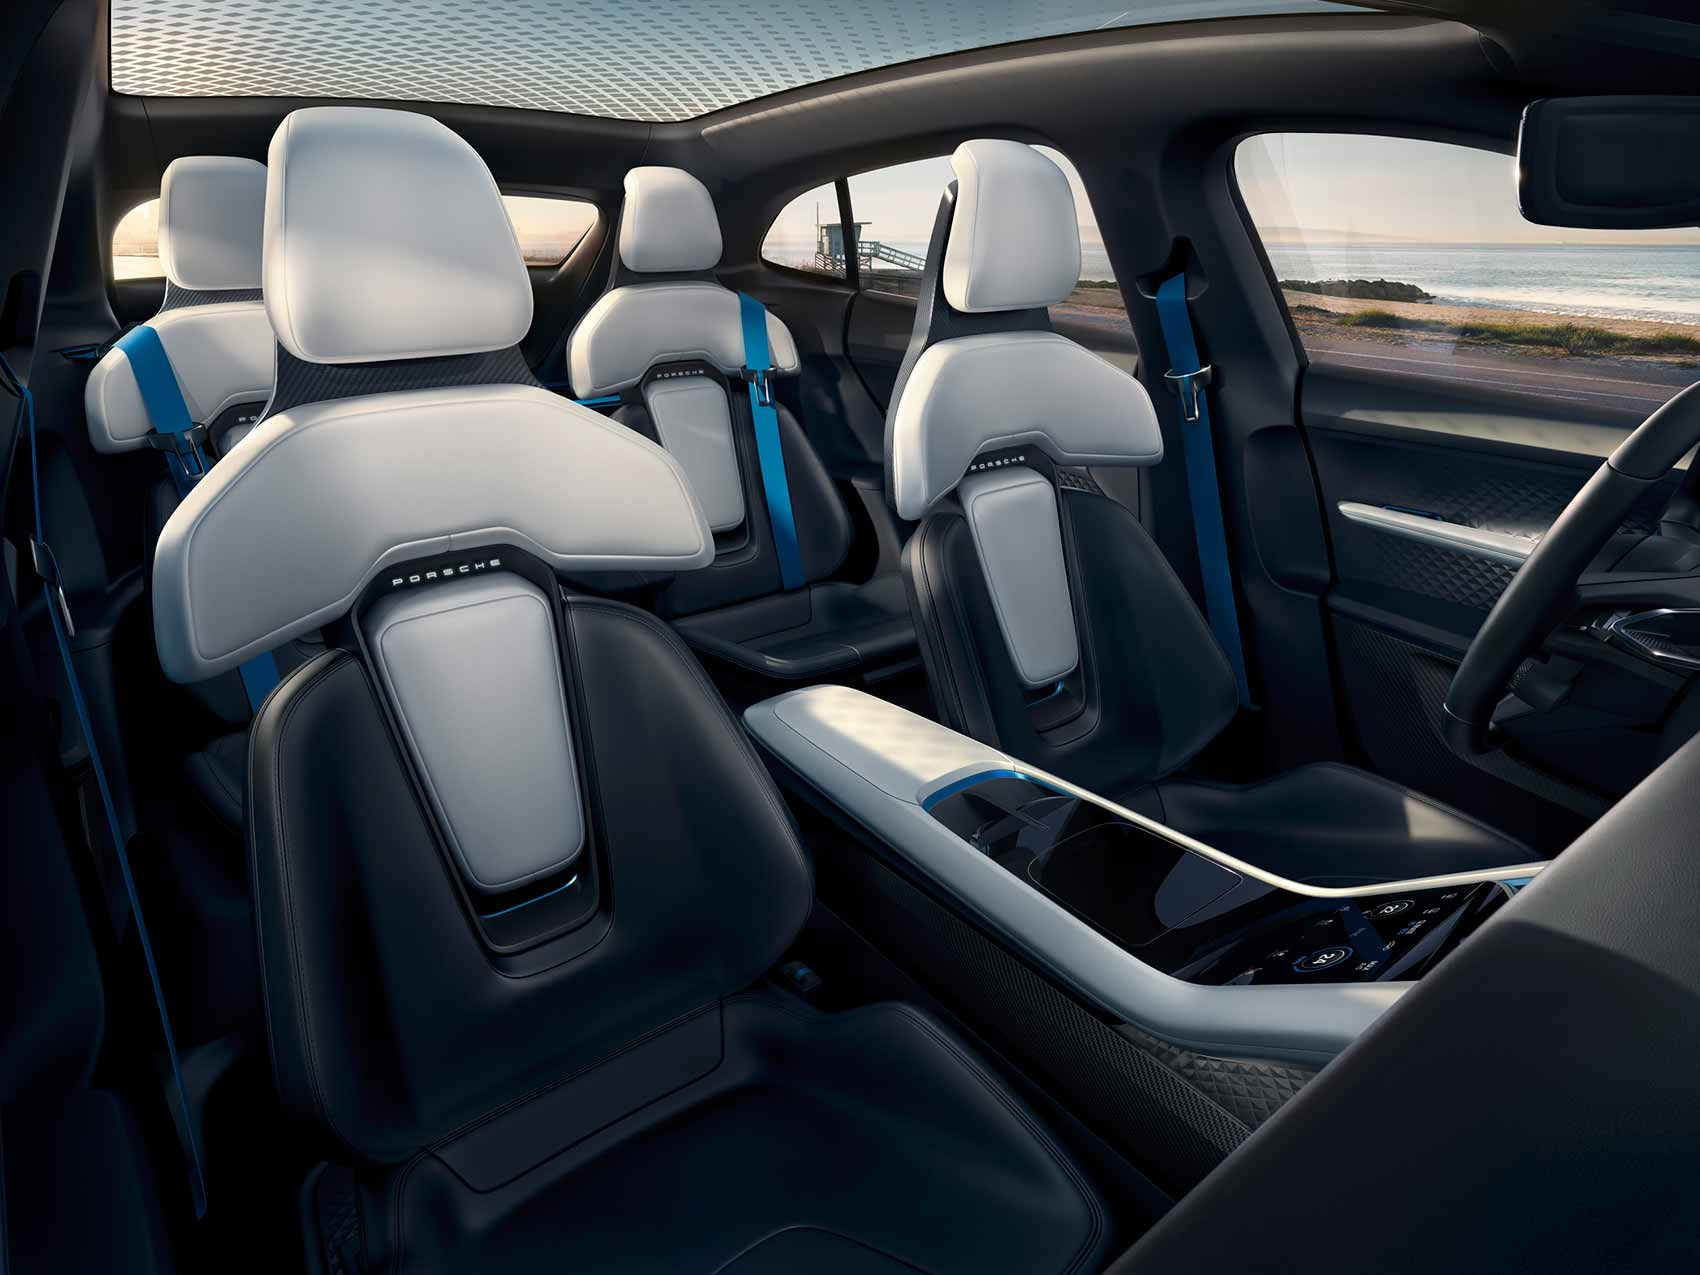 Seats of the Porsche Mission E Cross Turismo EV